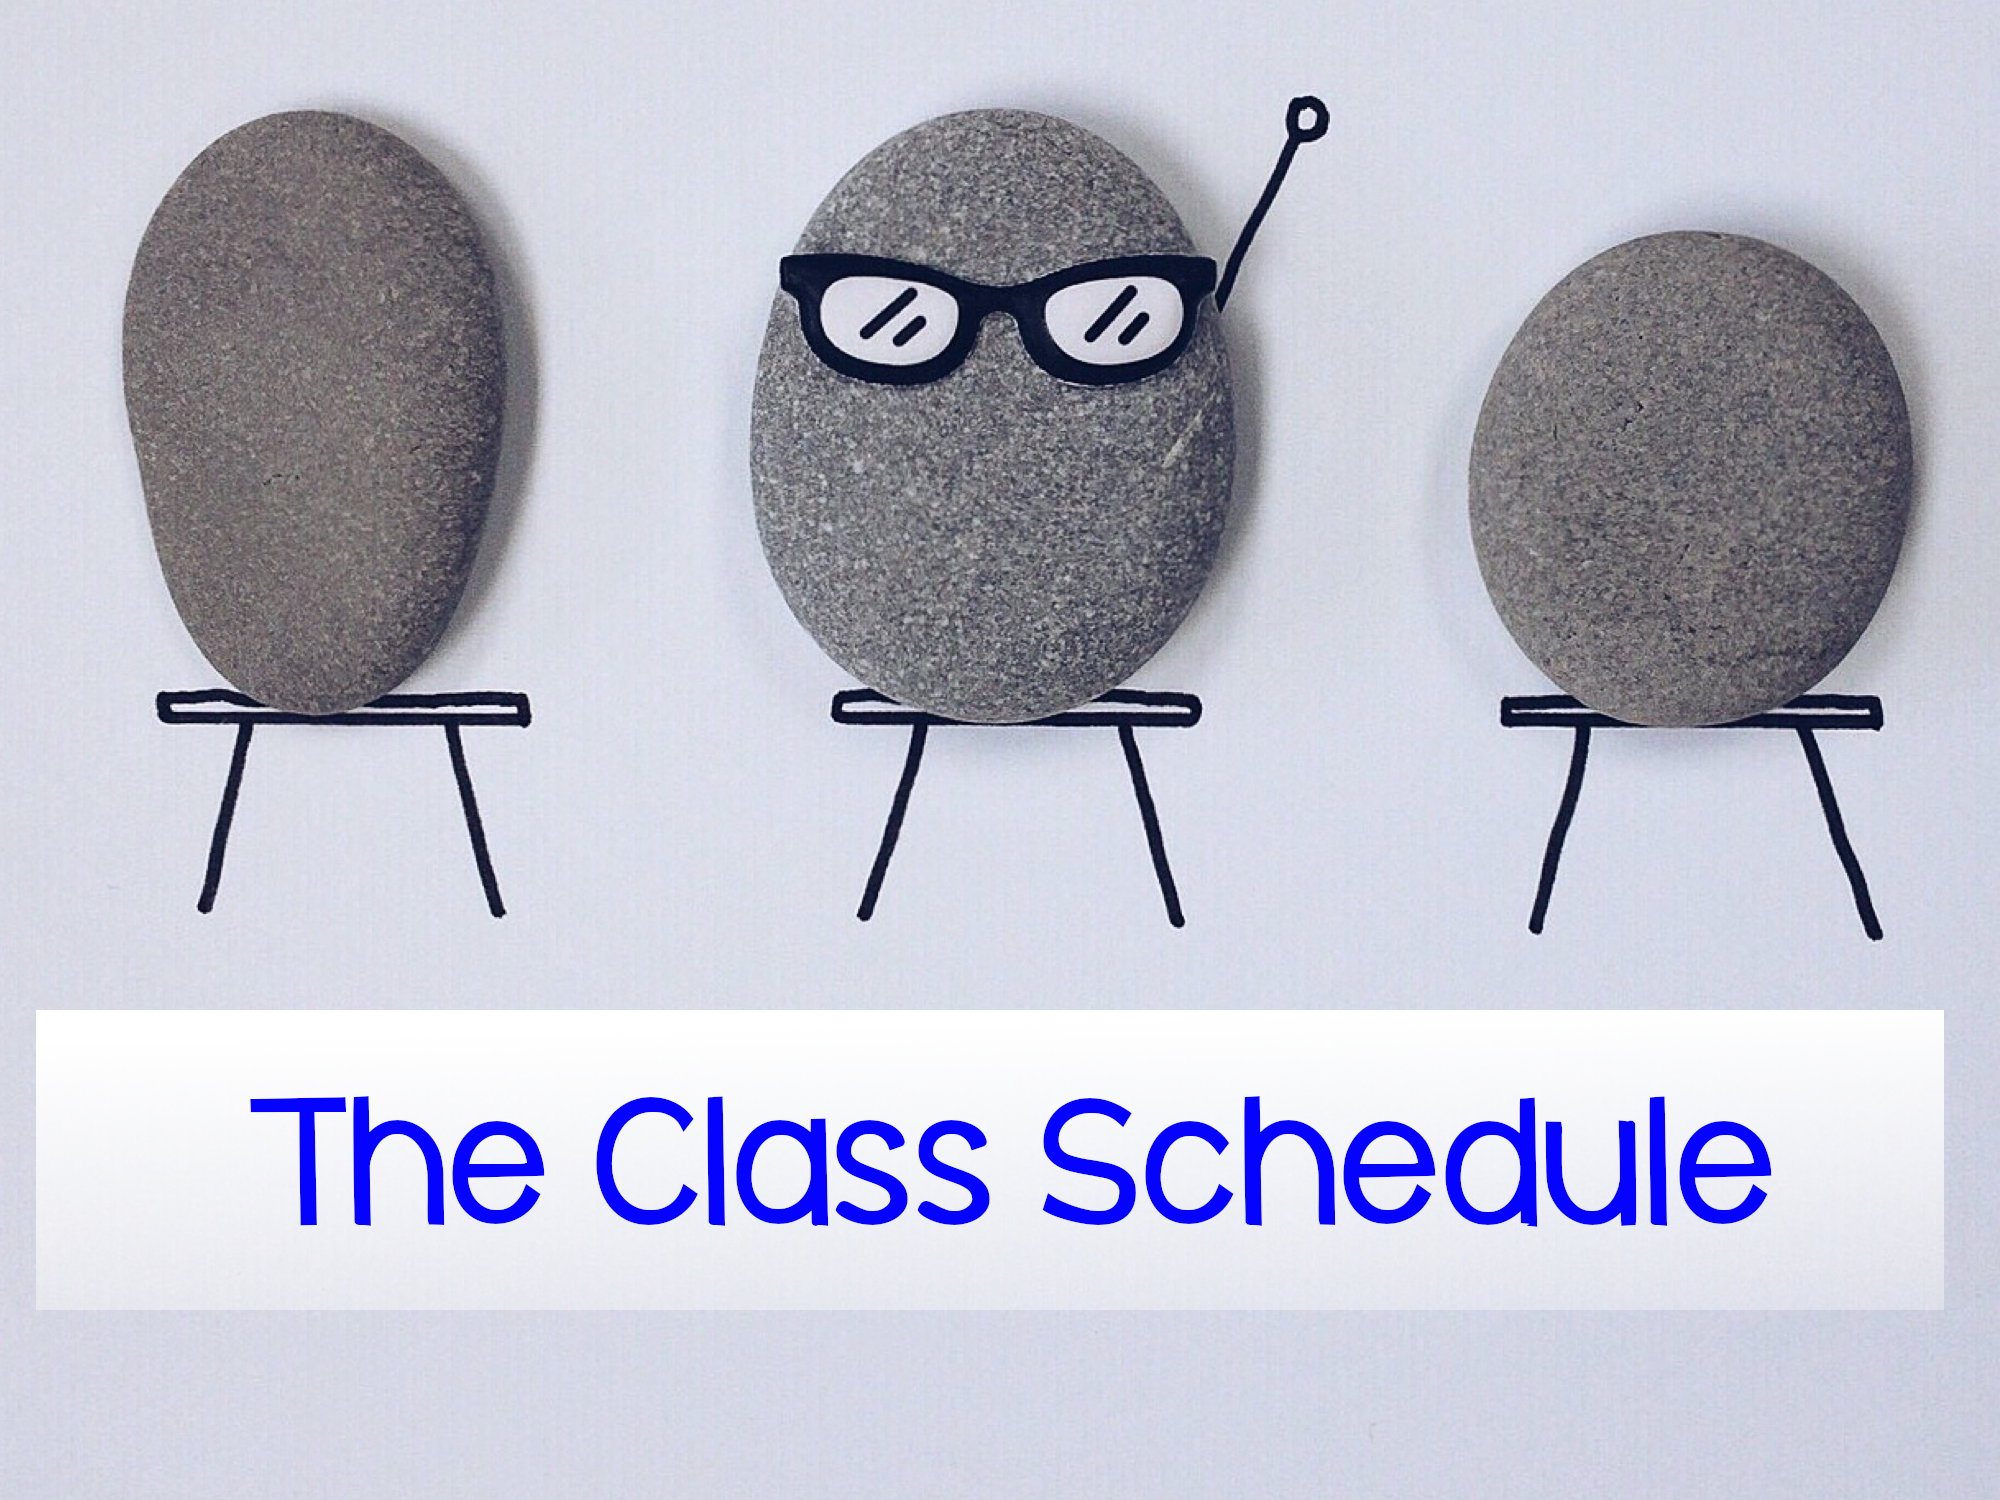 The Class Schedule [link]